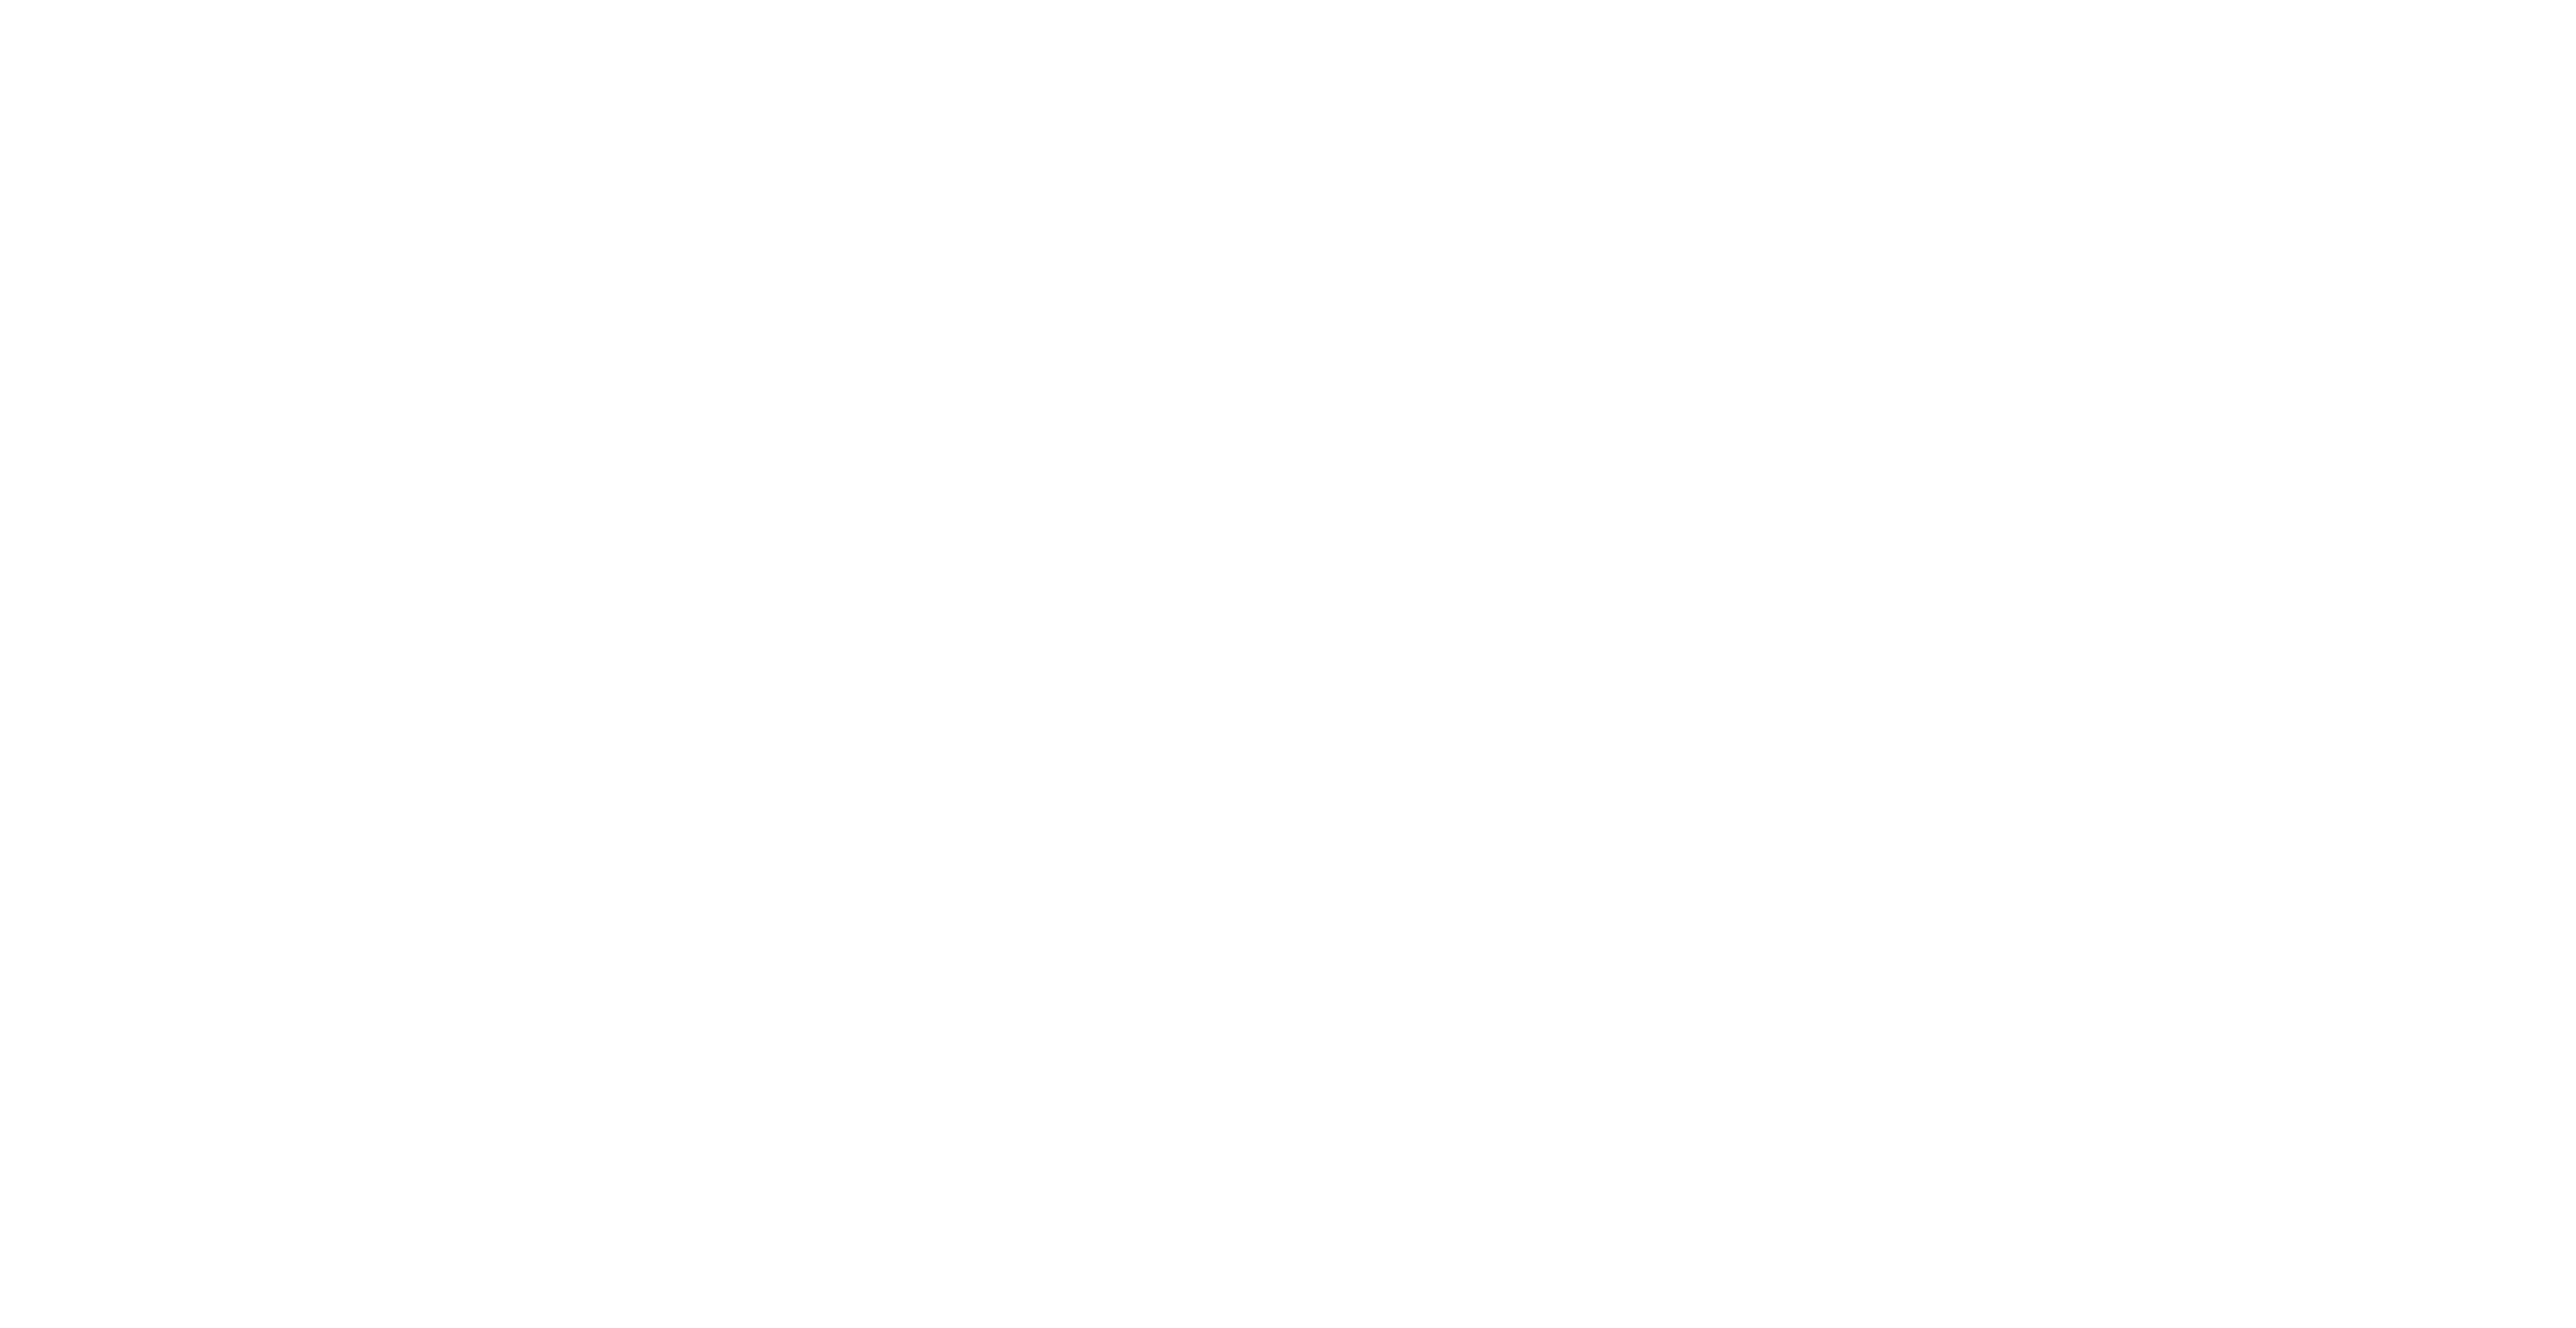 Bridges fund management logo